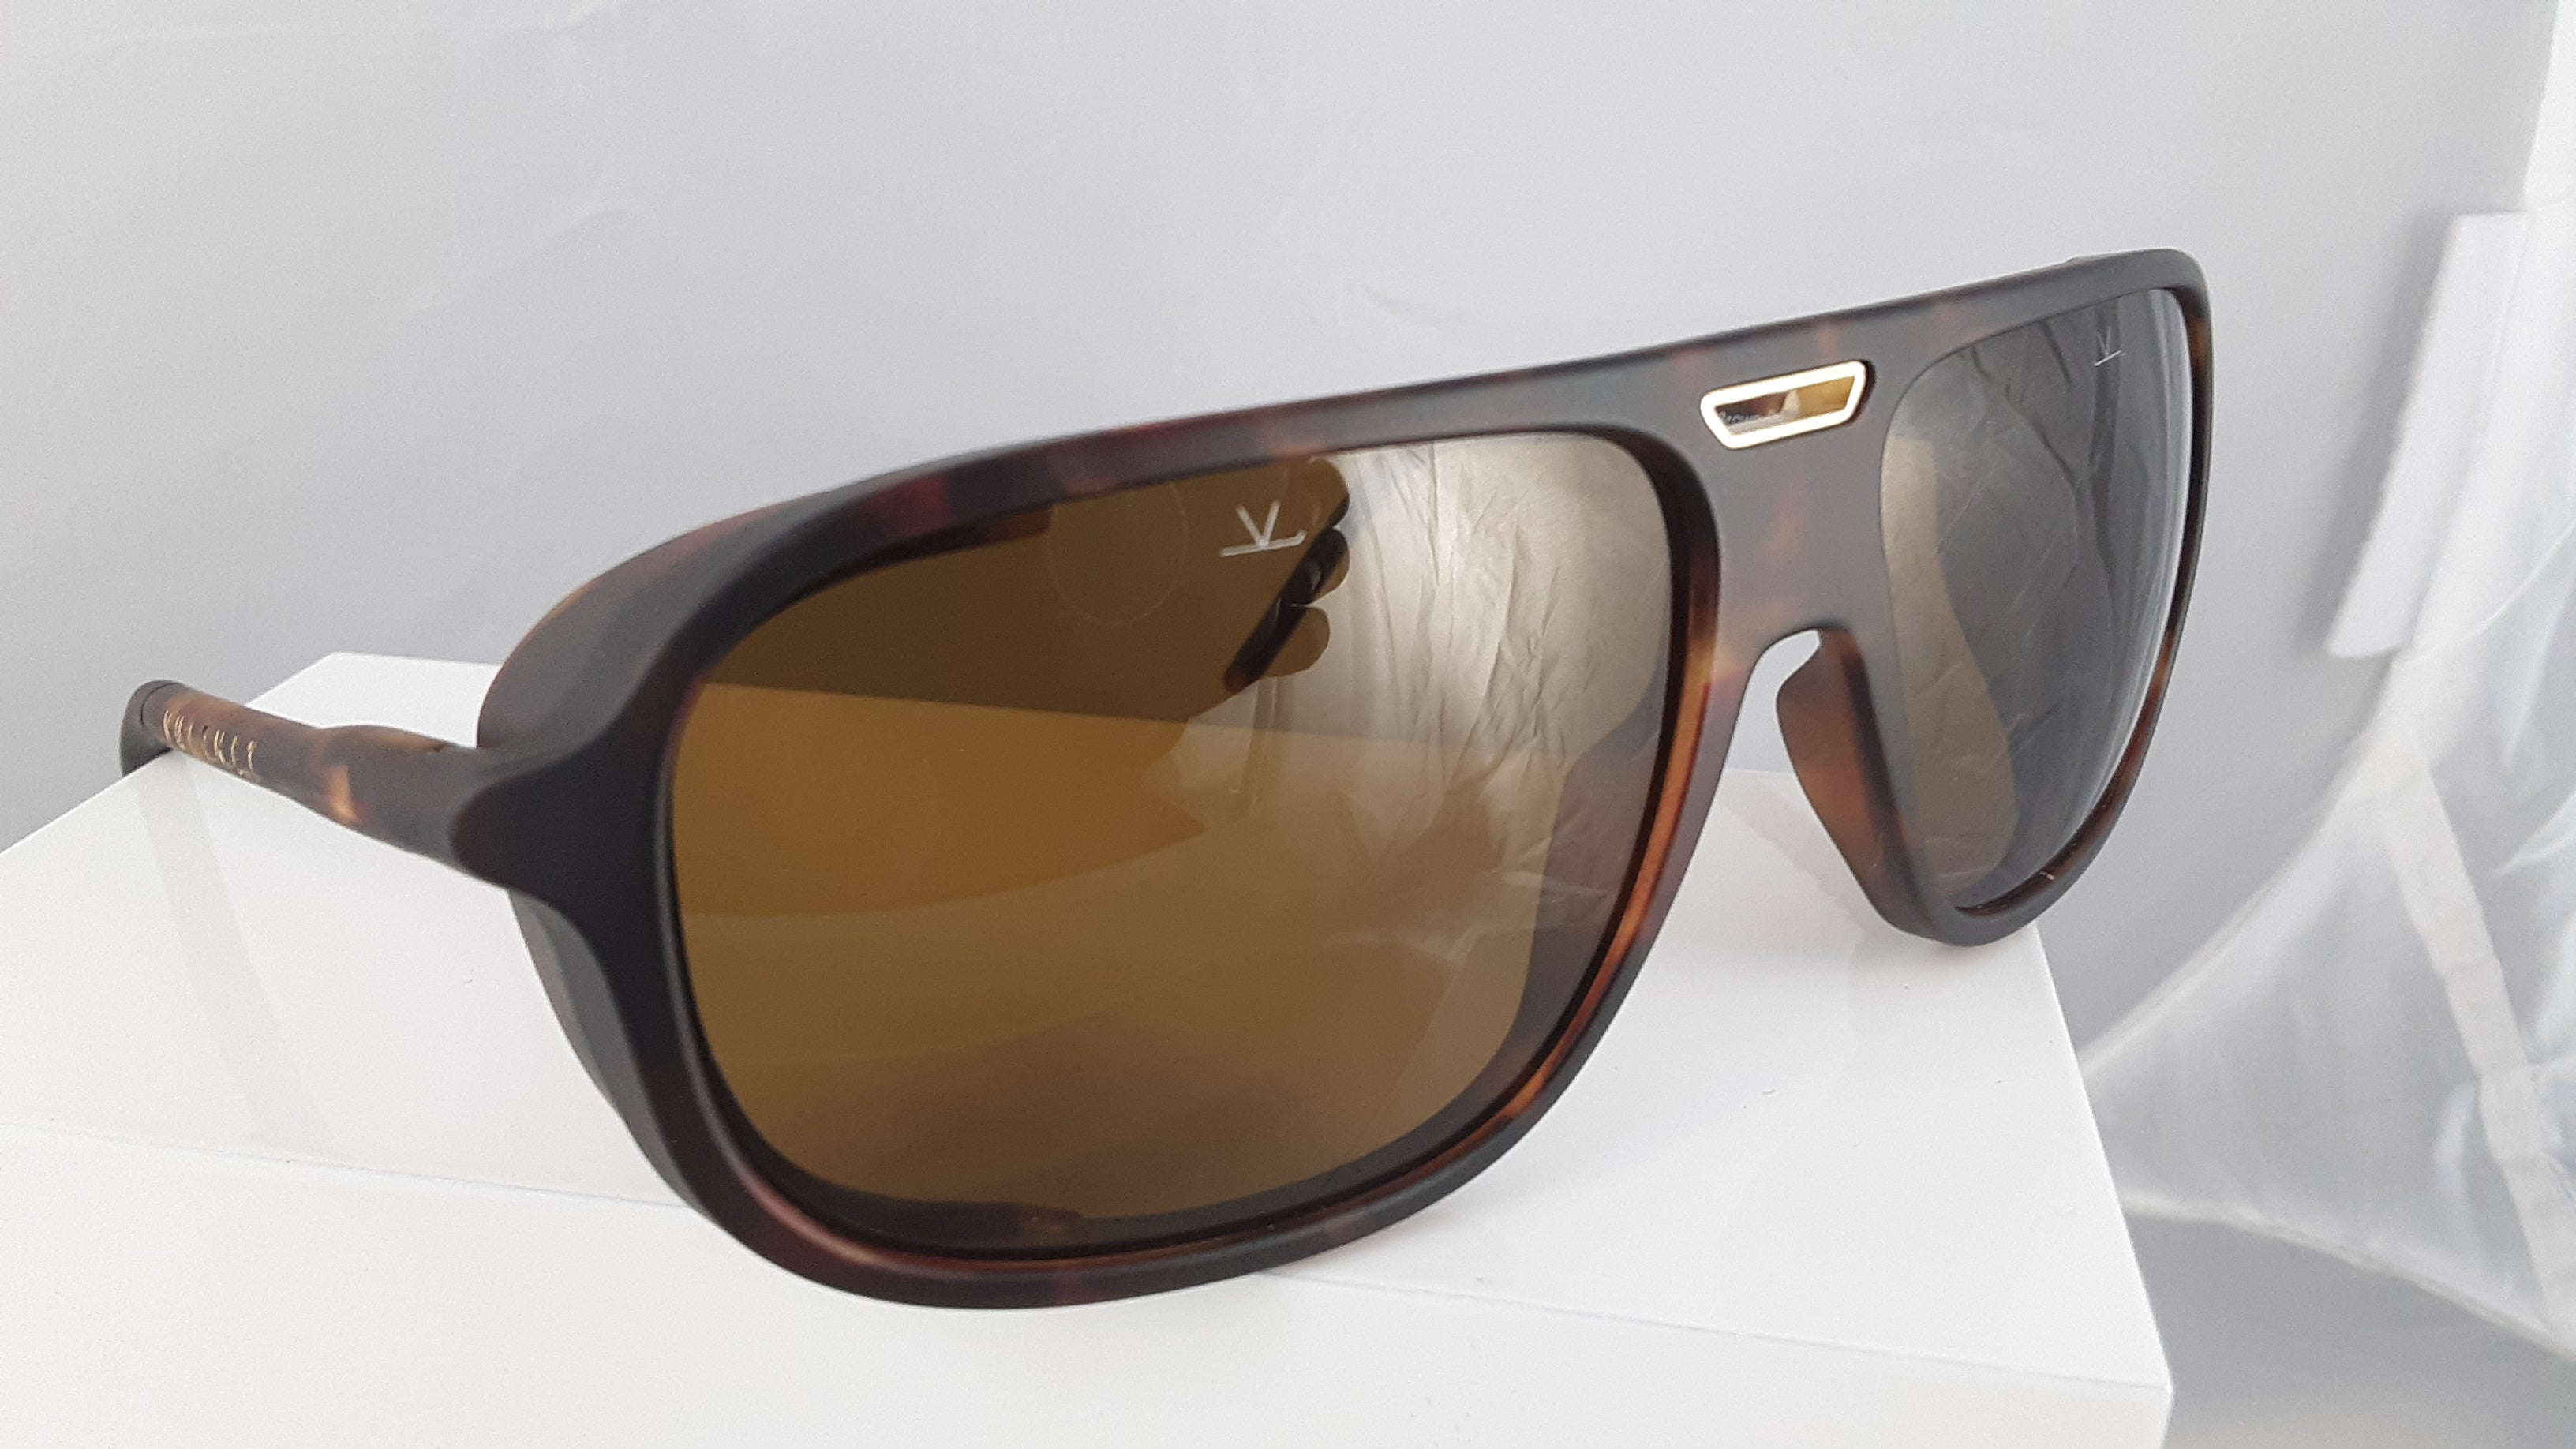 Vuarnet Polarized Brown Tortoise Sunglasses